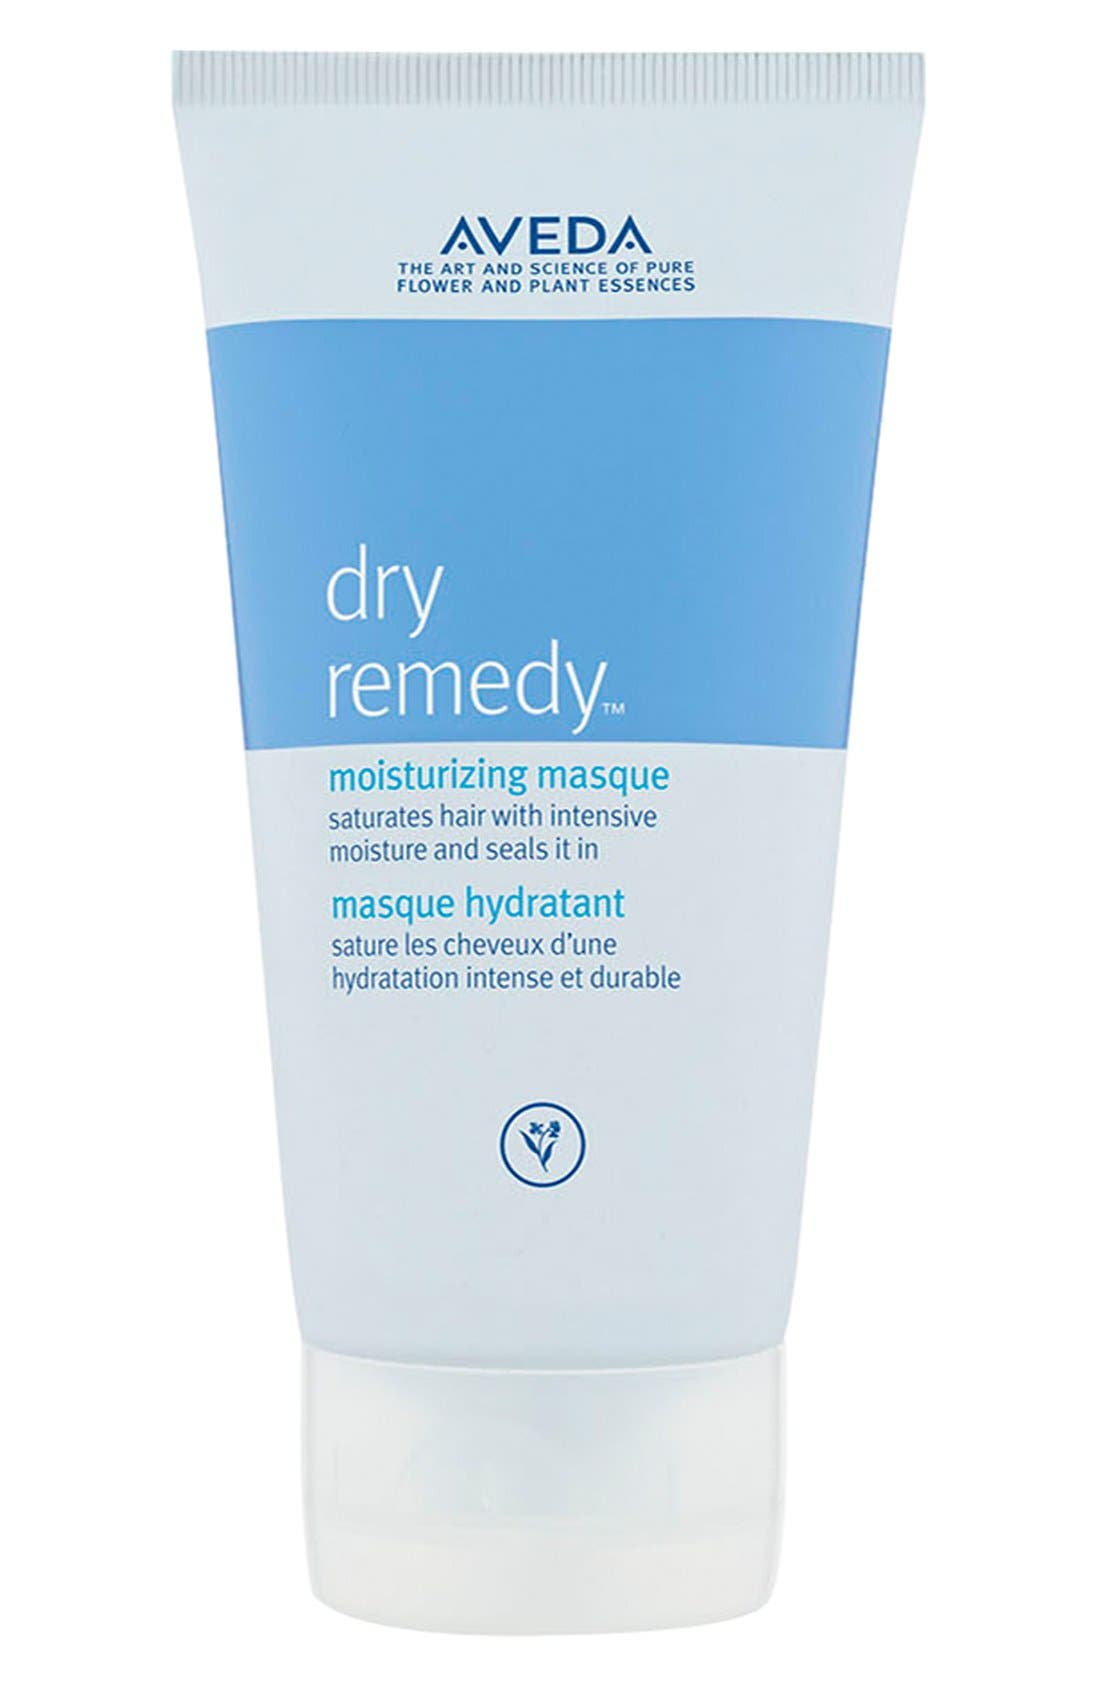 Aveda 'dry remedy™' Treatment Masque